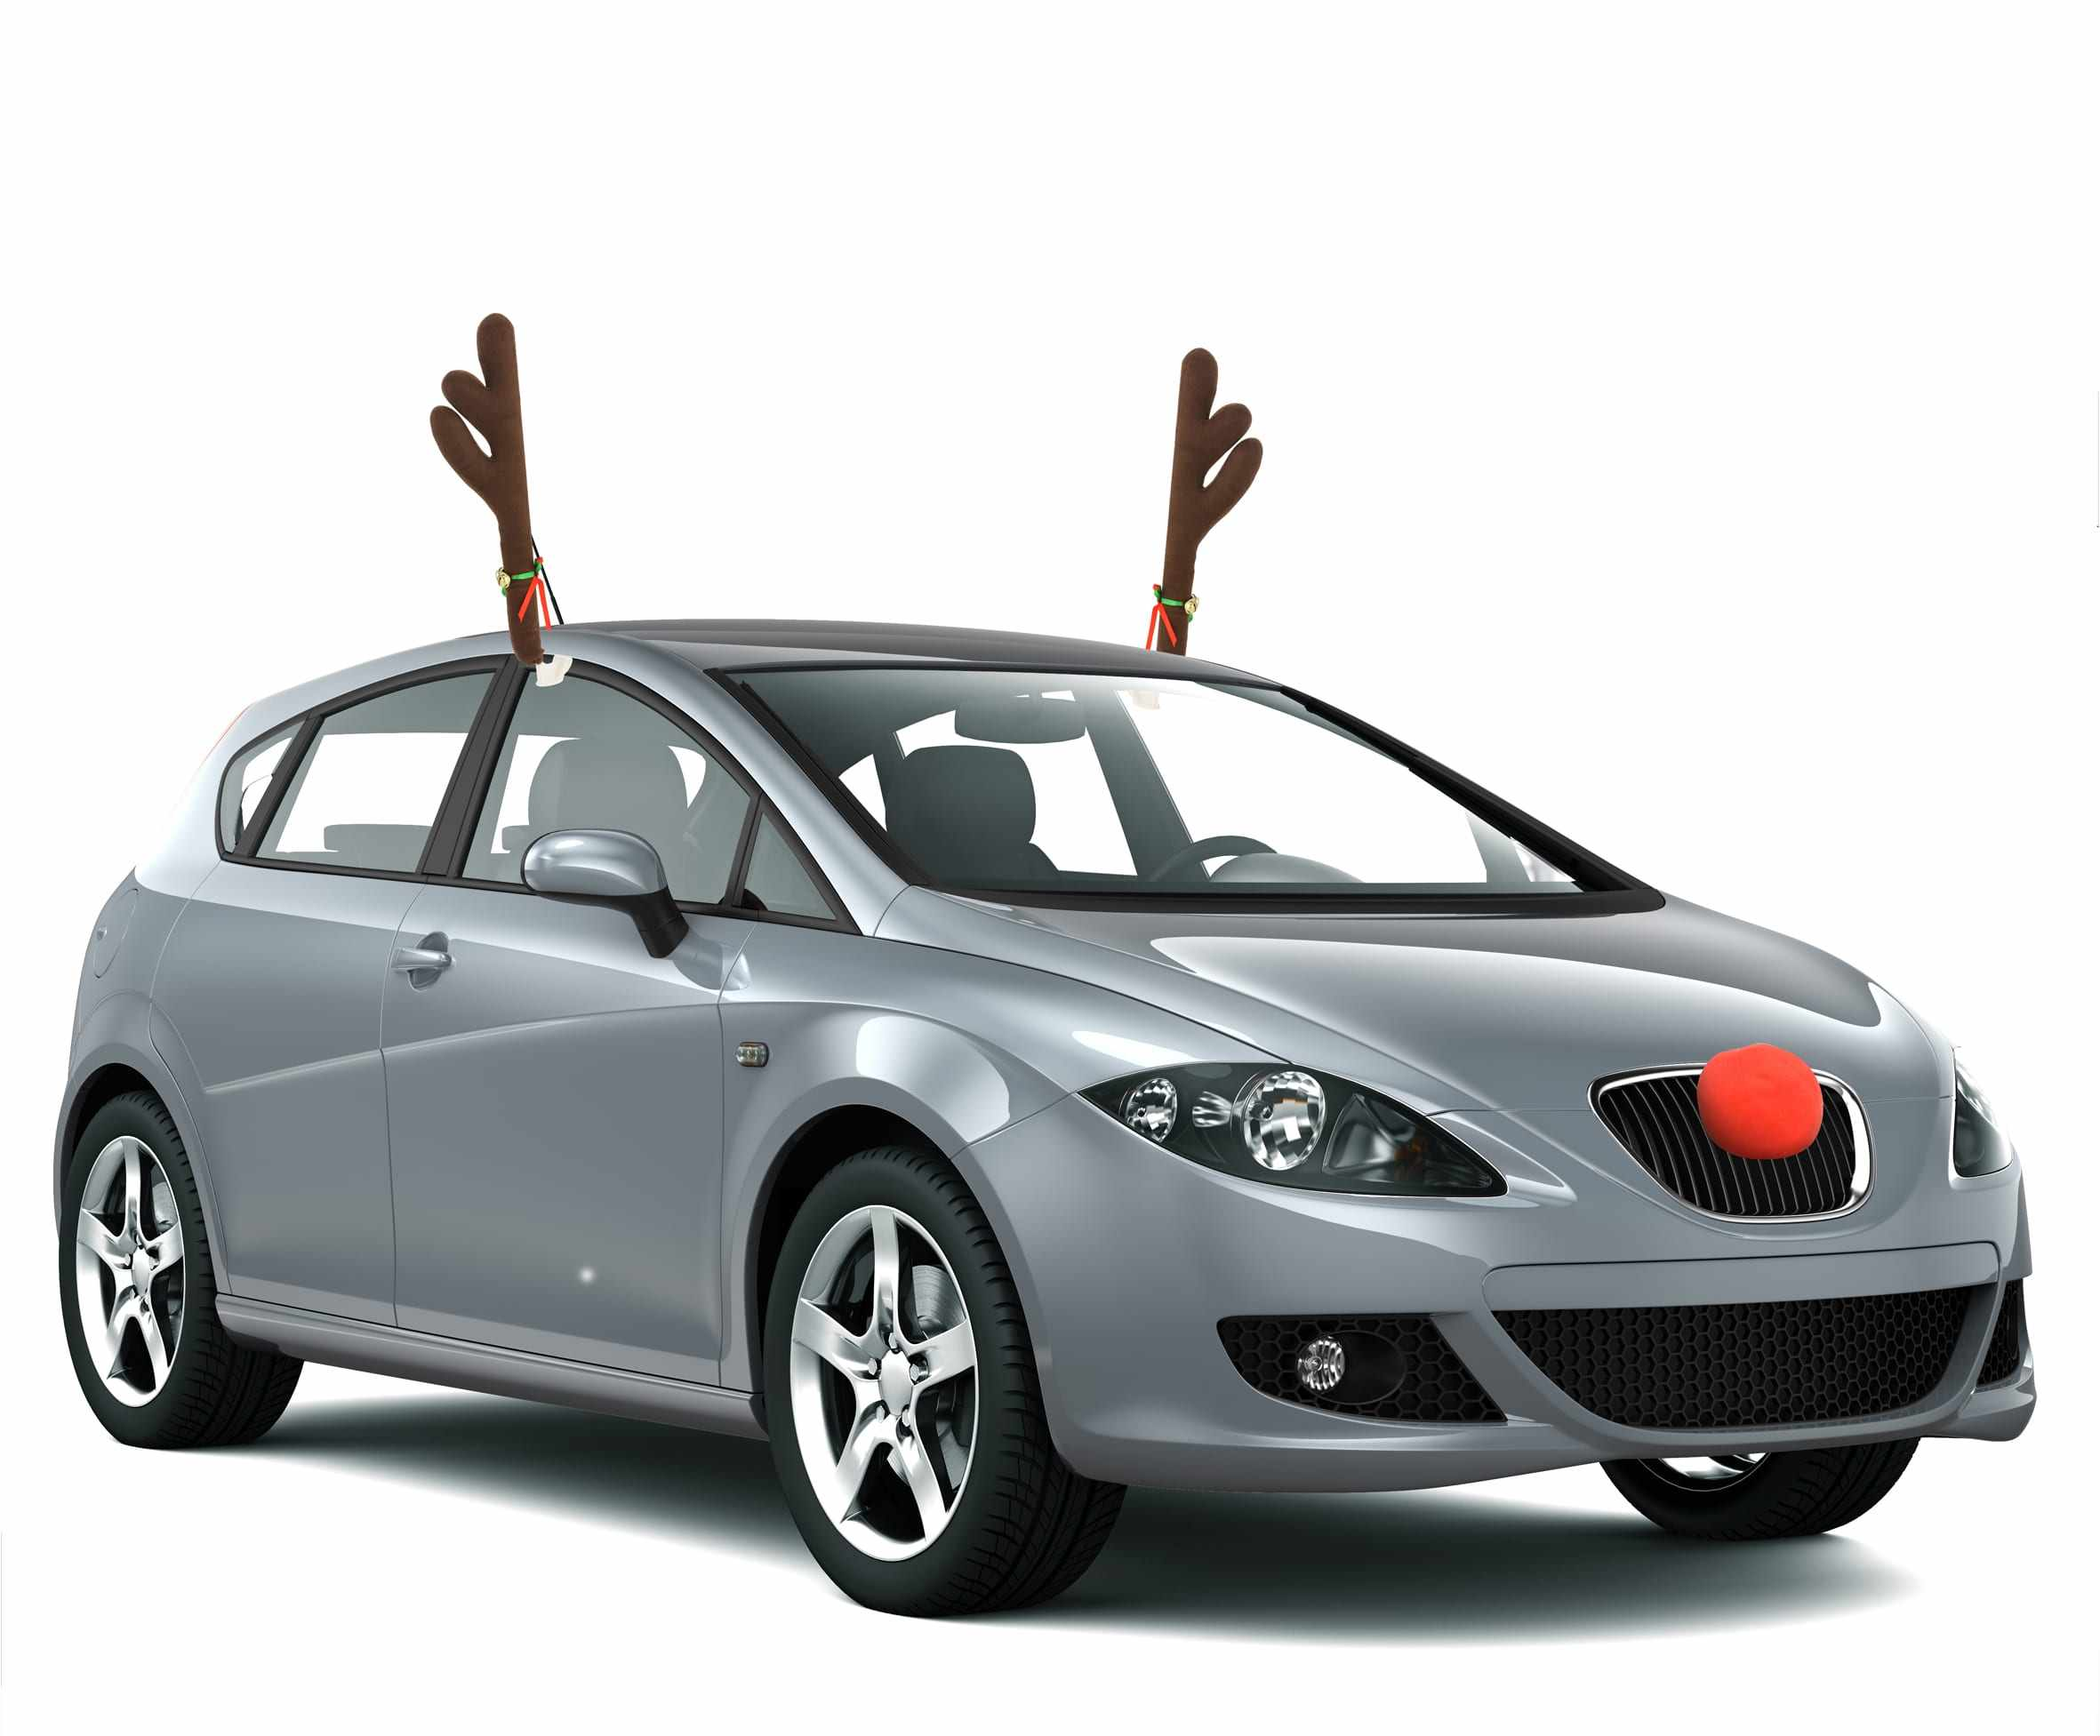 Window Top Rudolph Reindeer Jingle Bell Car Reindeer Antlers And Red Nose Vehicle Costume Christmas Ornaments Christmas Gift